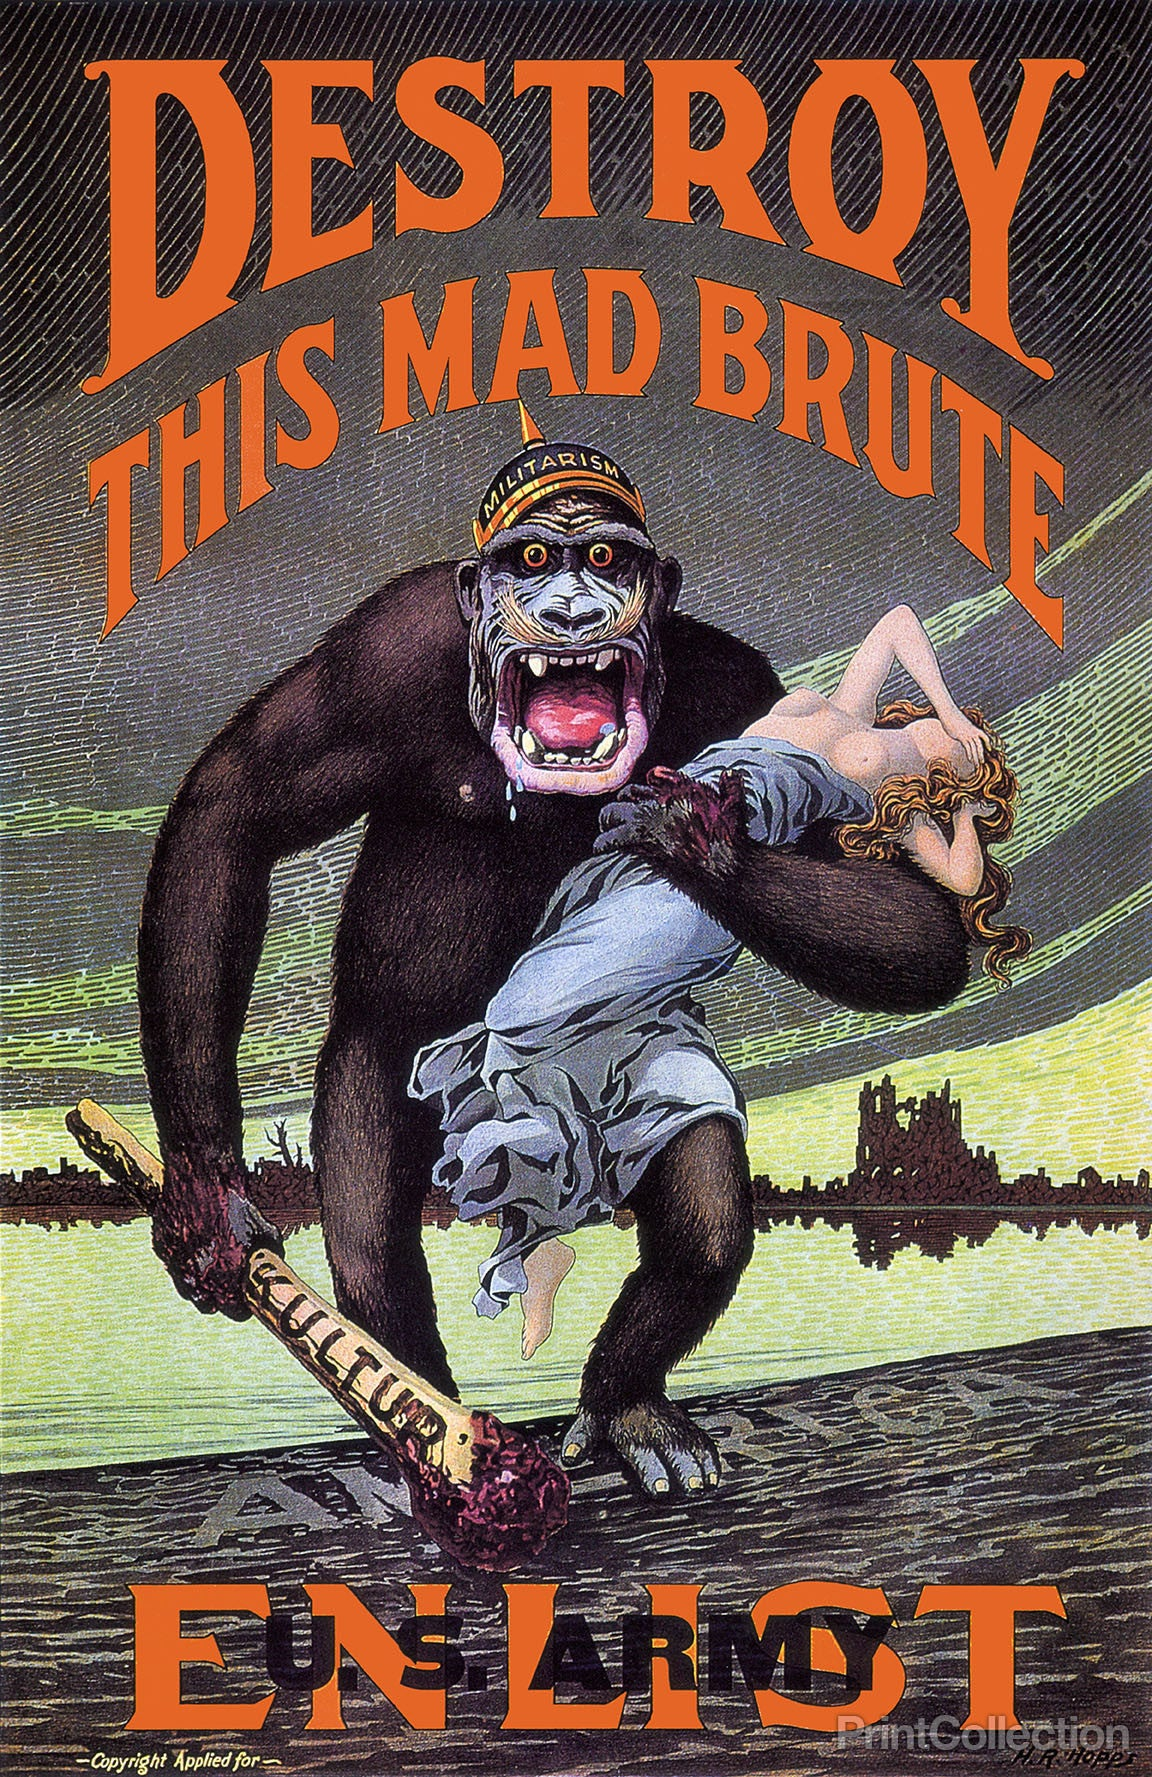 Print collection destroy this mad brute - Intire decrution ...